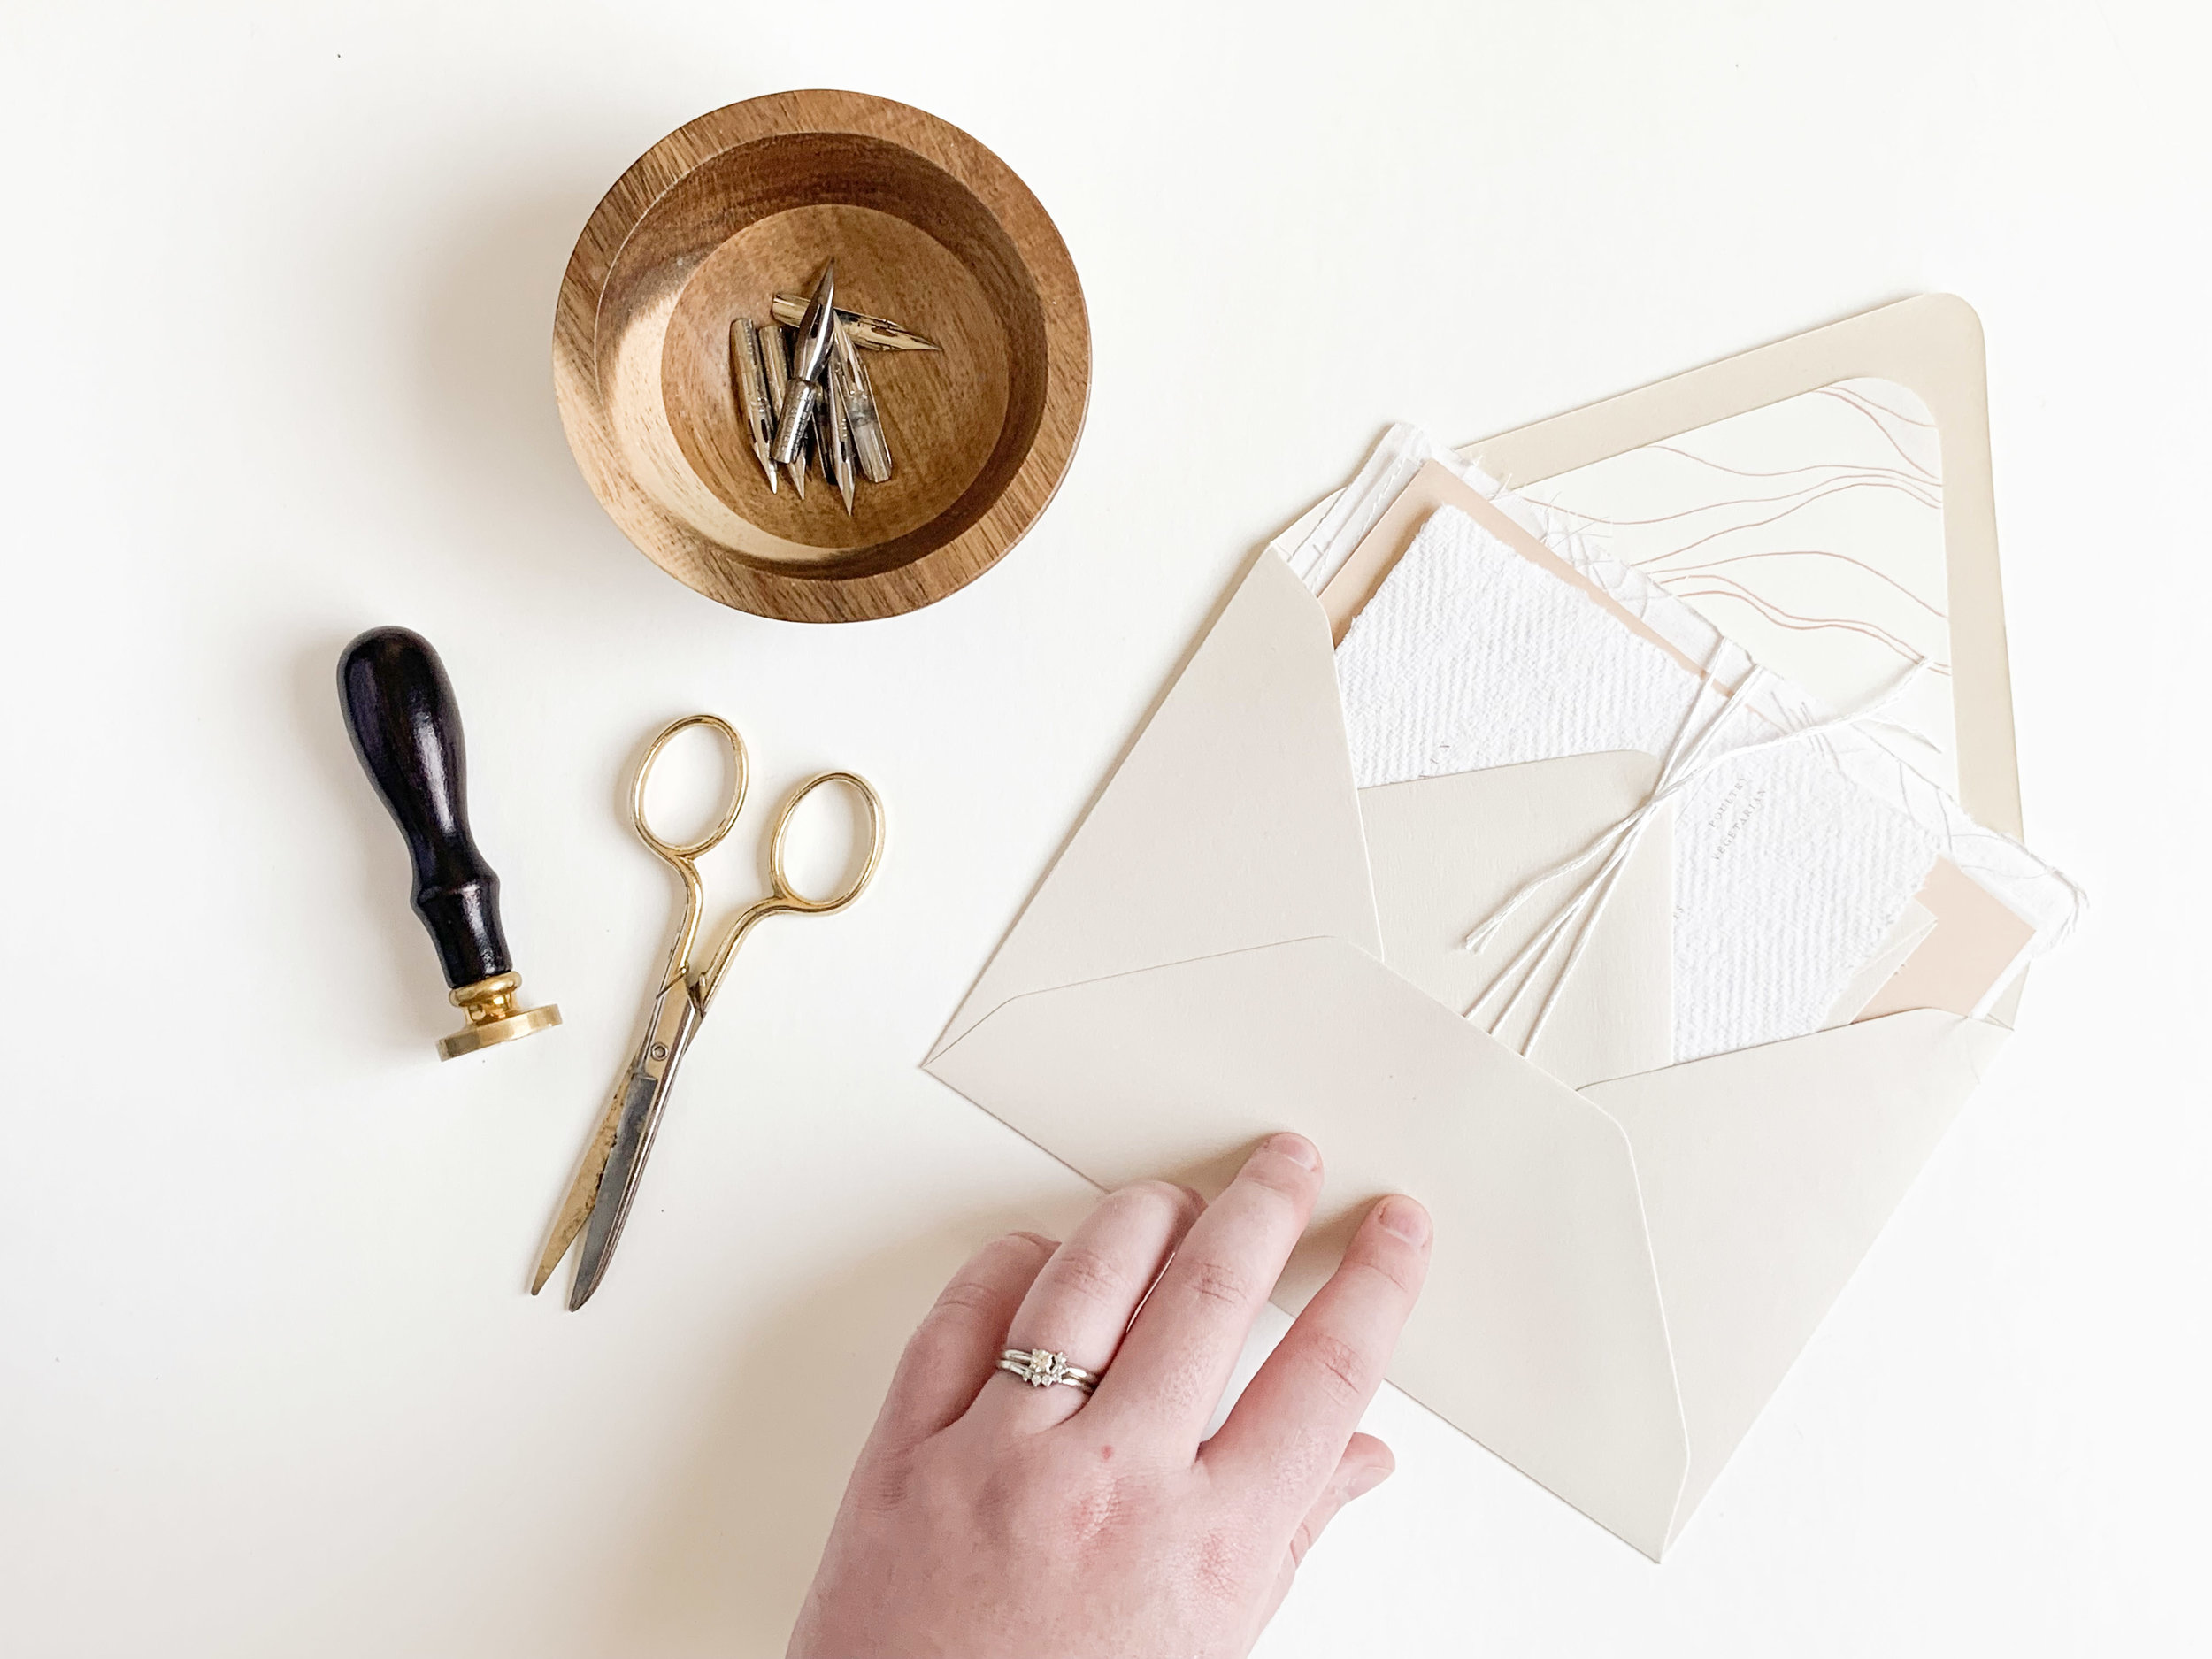 How to style stationery flat lays. Flat lay styling tips and tricks for photographers, planners, stylists, and invitation designers!